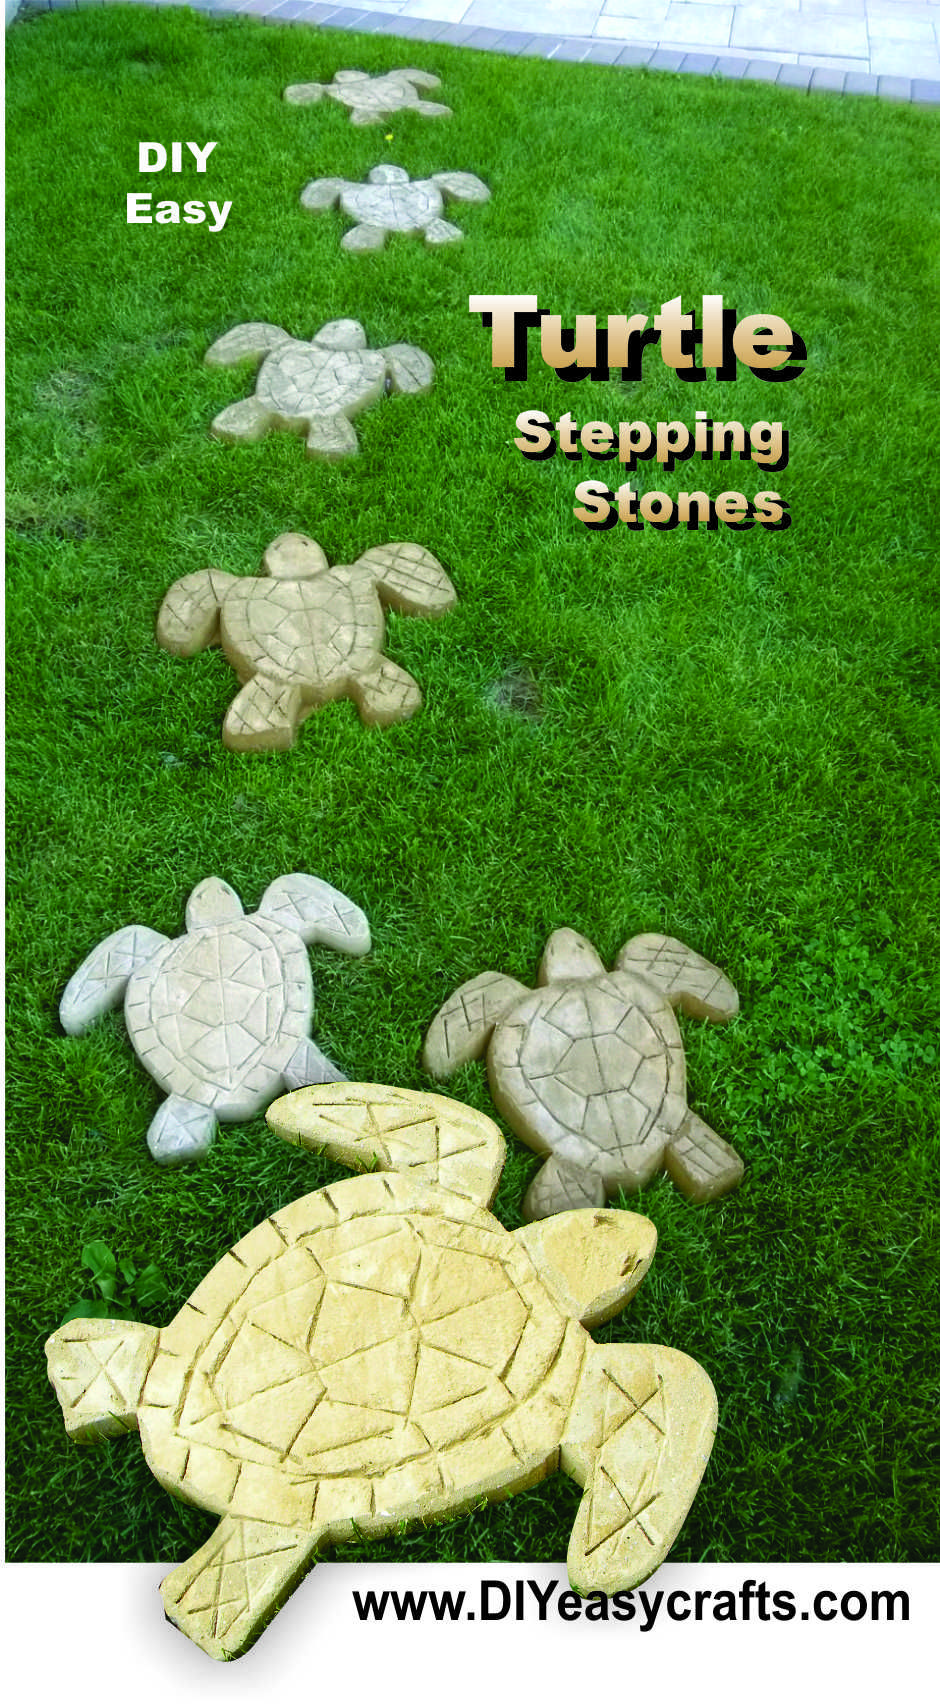 Pin by Dan Berg on Share Today\'s Craft and DIY Ideas | Pinterest ...